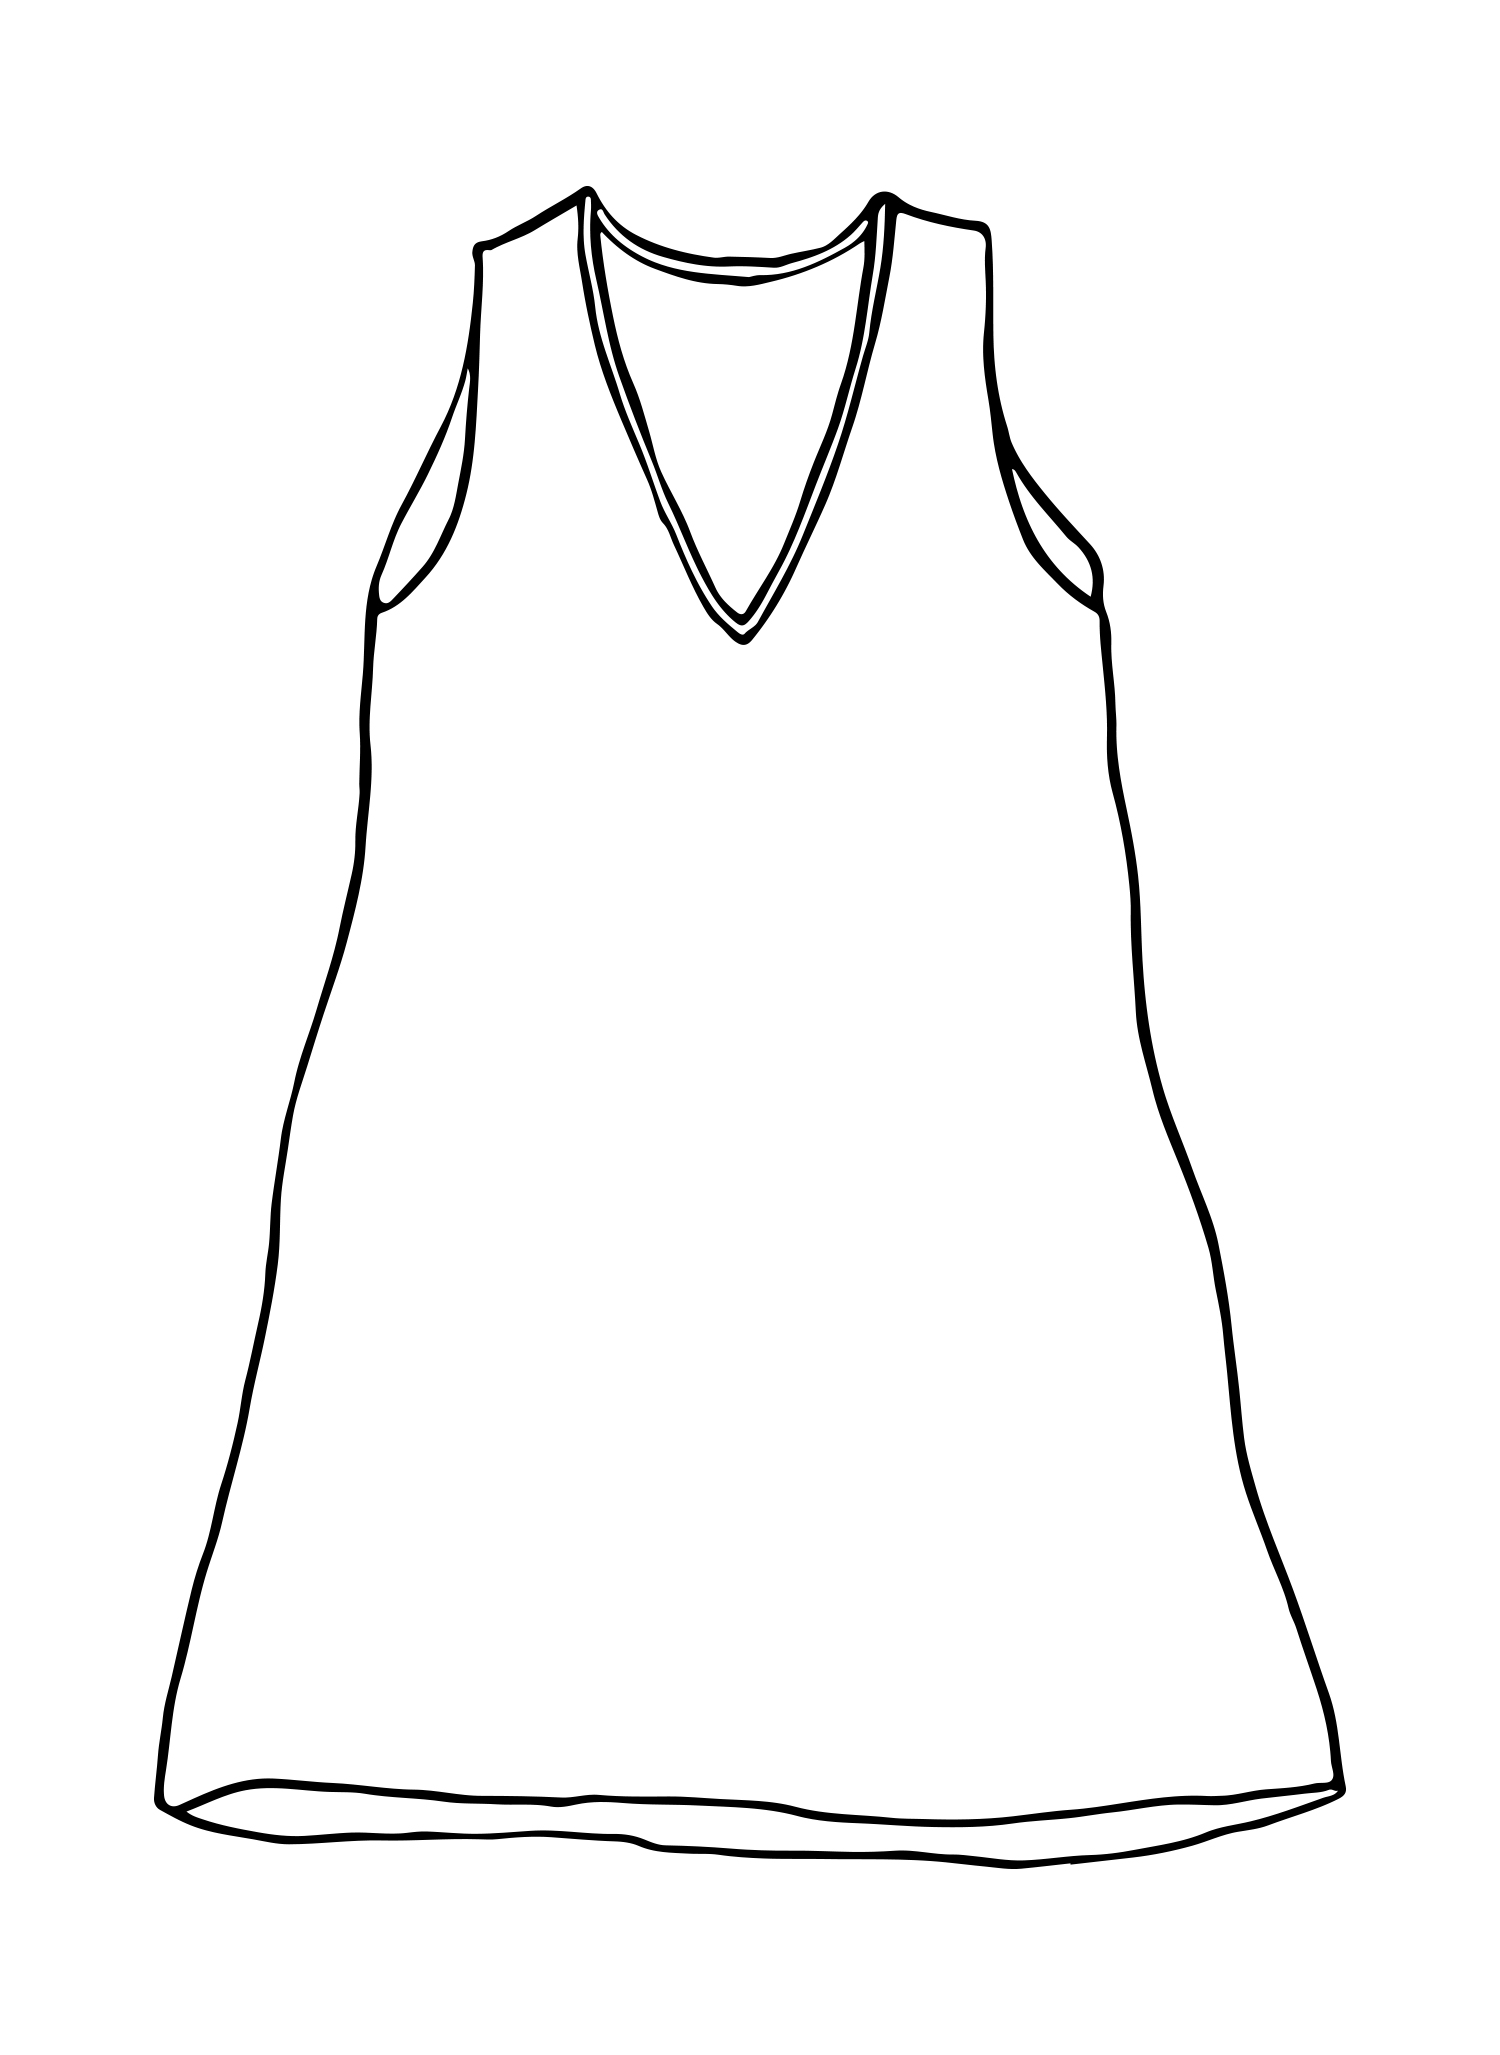 Long V-Neck Tank sketch image